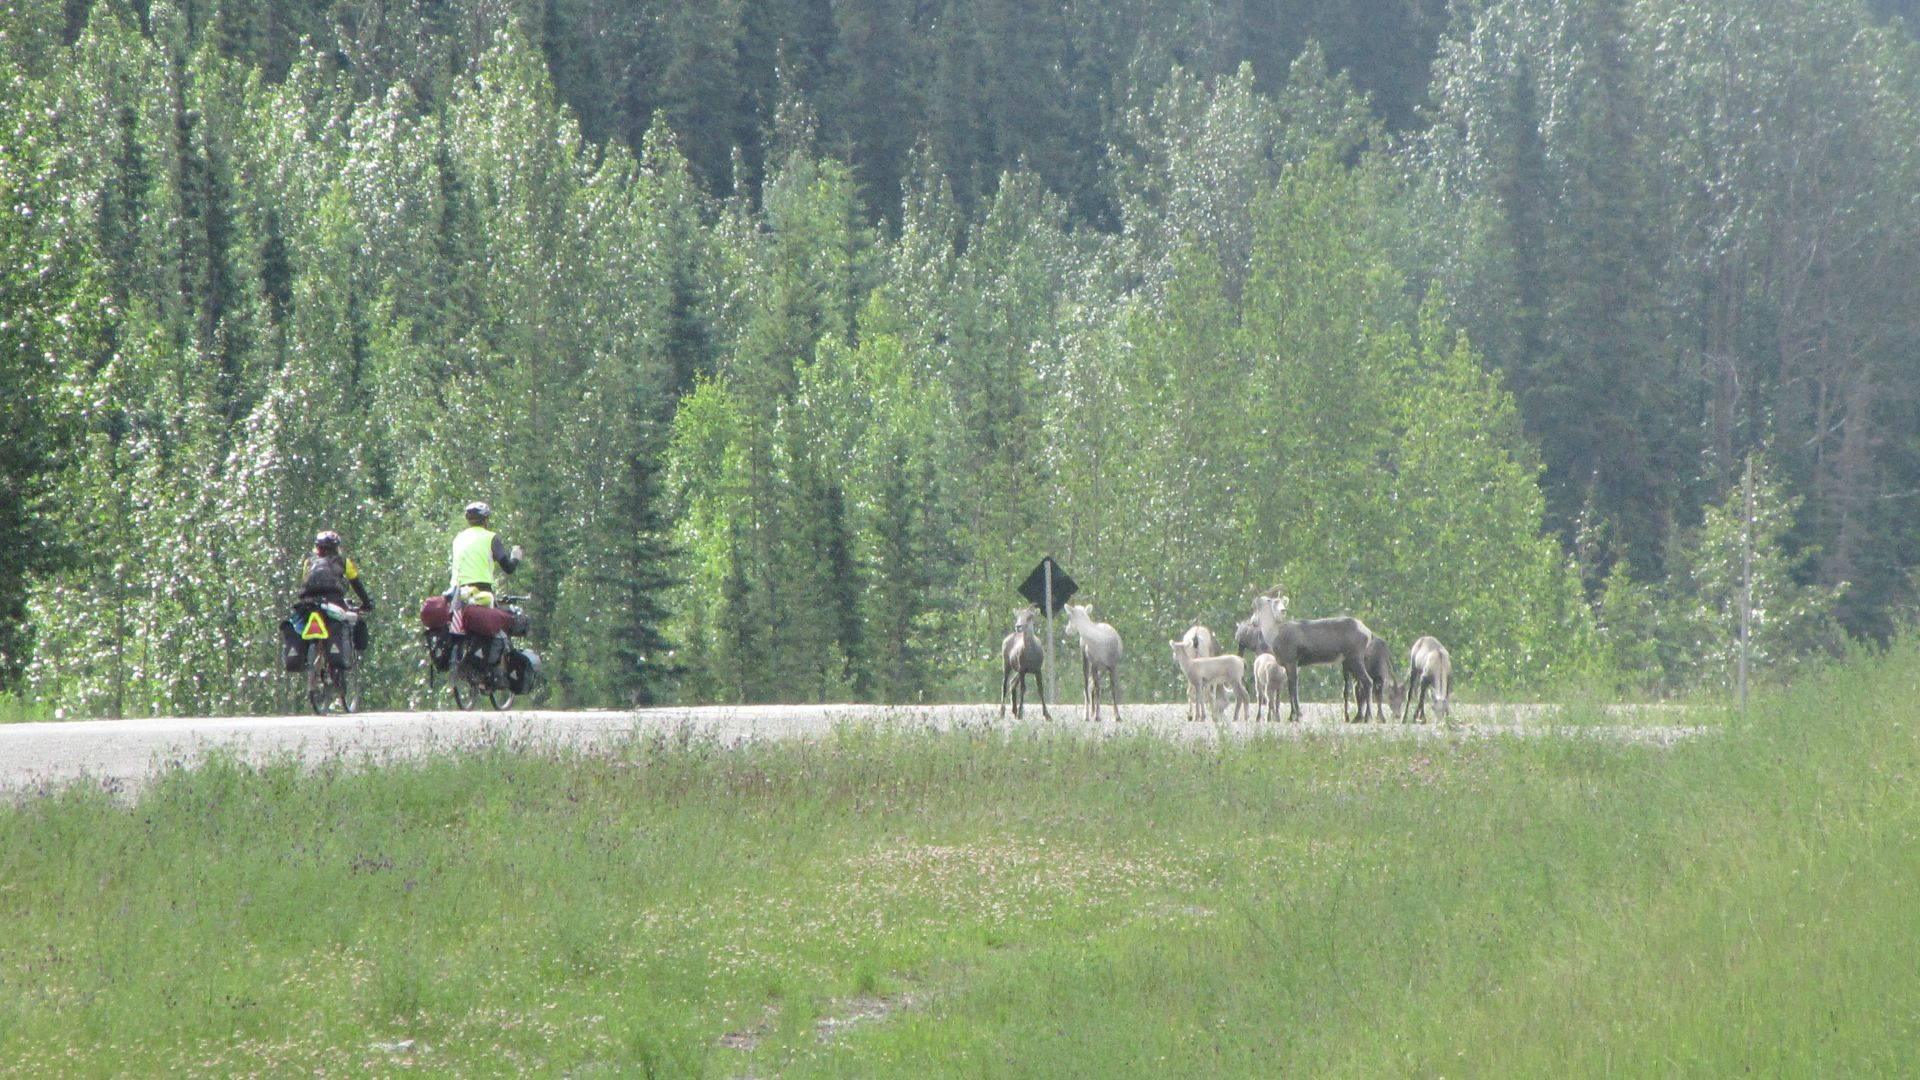 Nr Toad River, YT, Canada - Ward & Jacky attempt the famous \'sheep flank\' manoeuvre